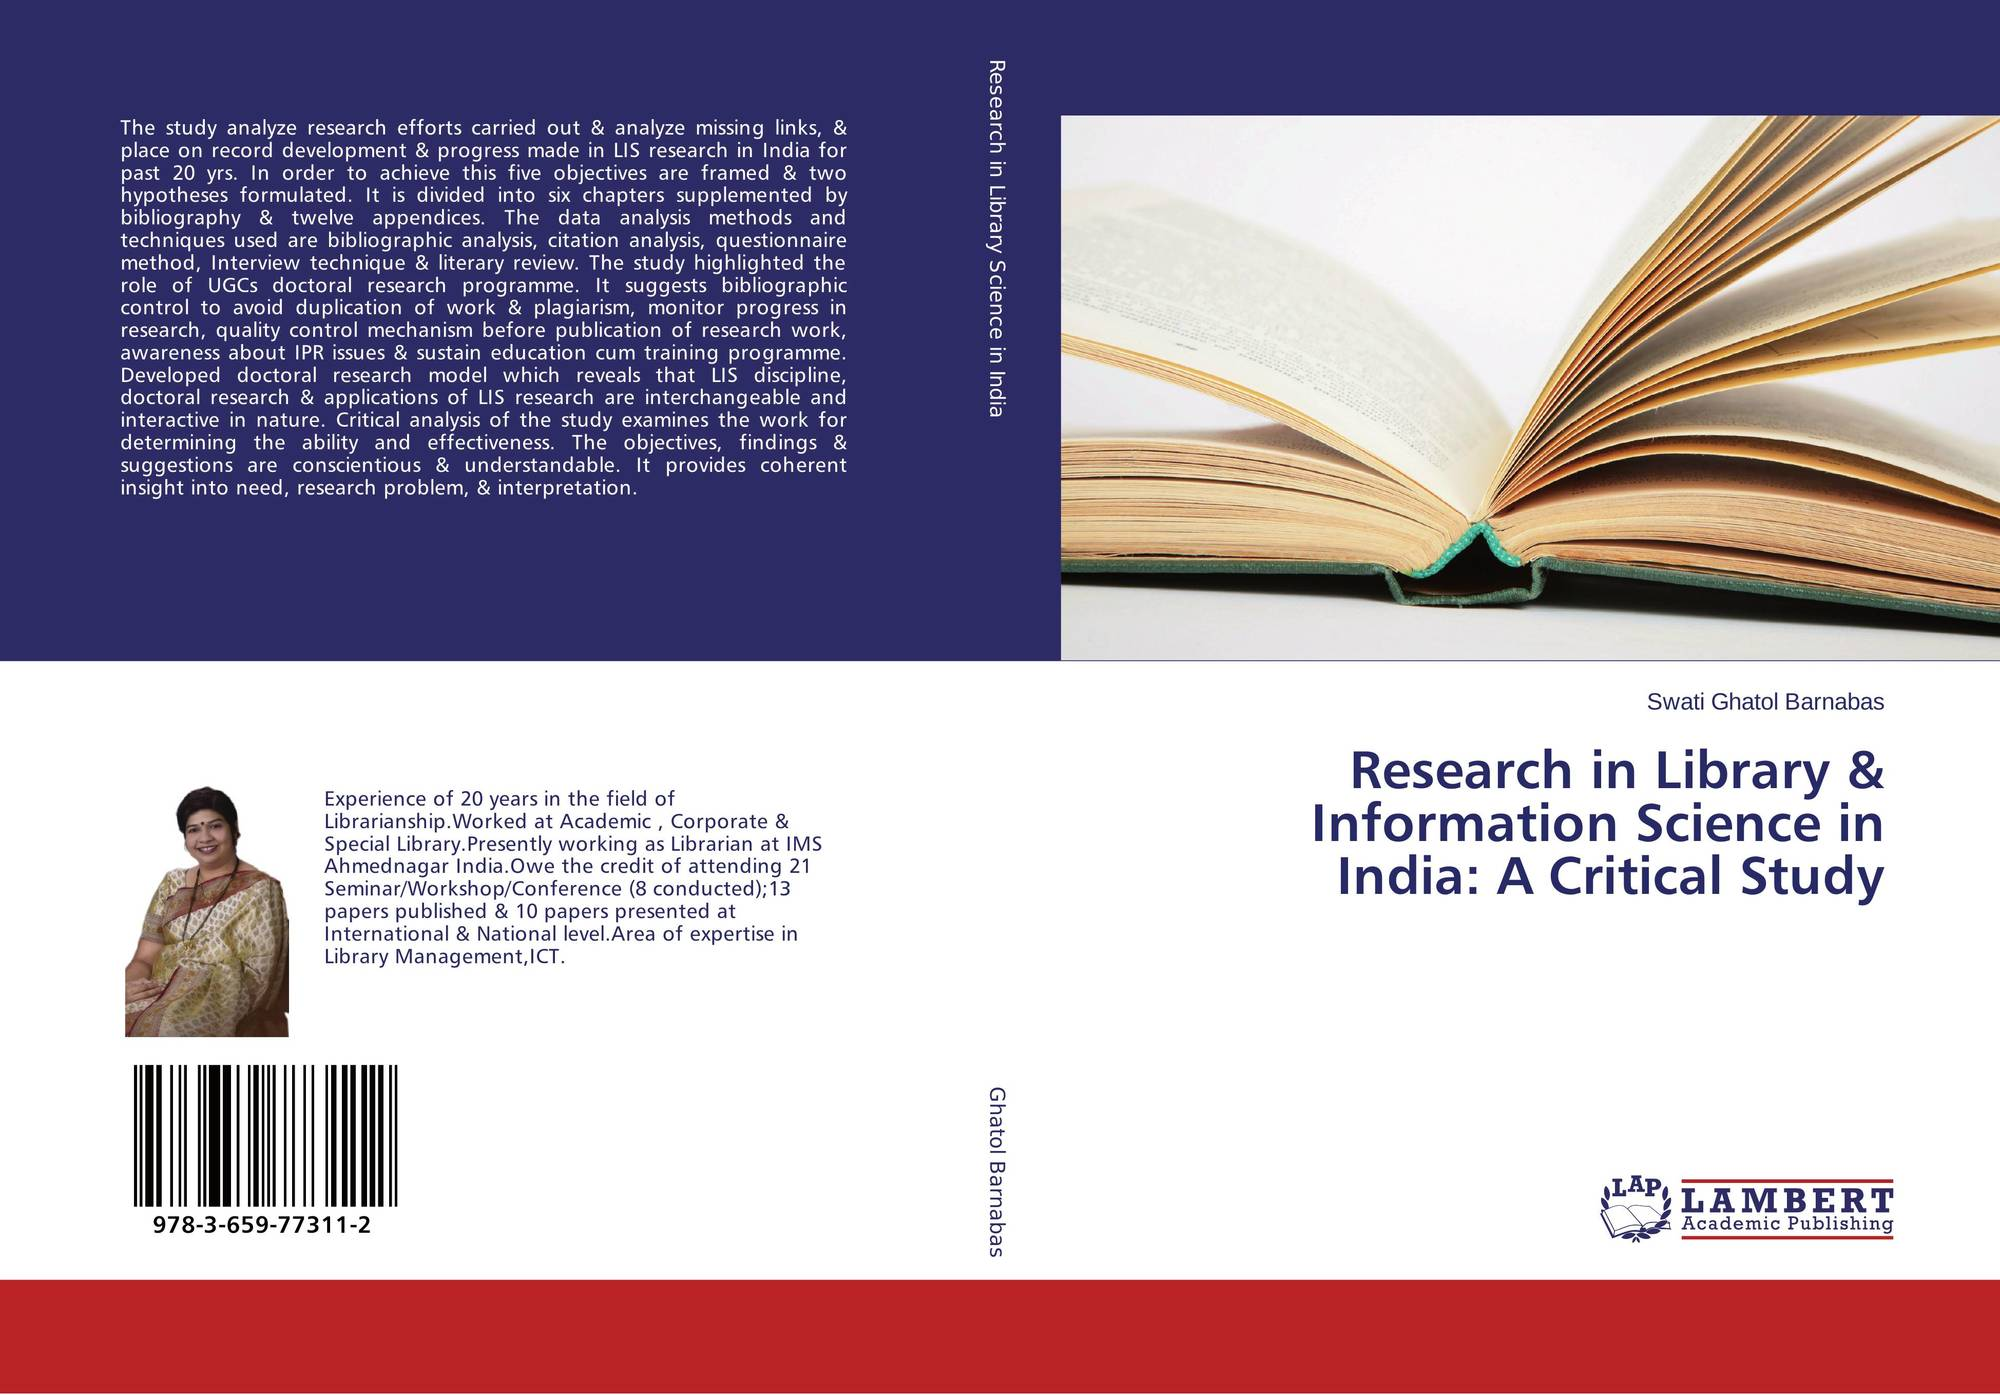 Research in Library & Information Science in India: A Critical Study